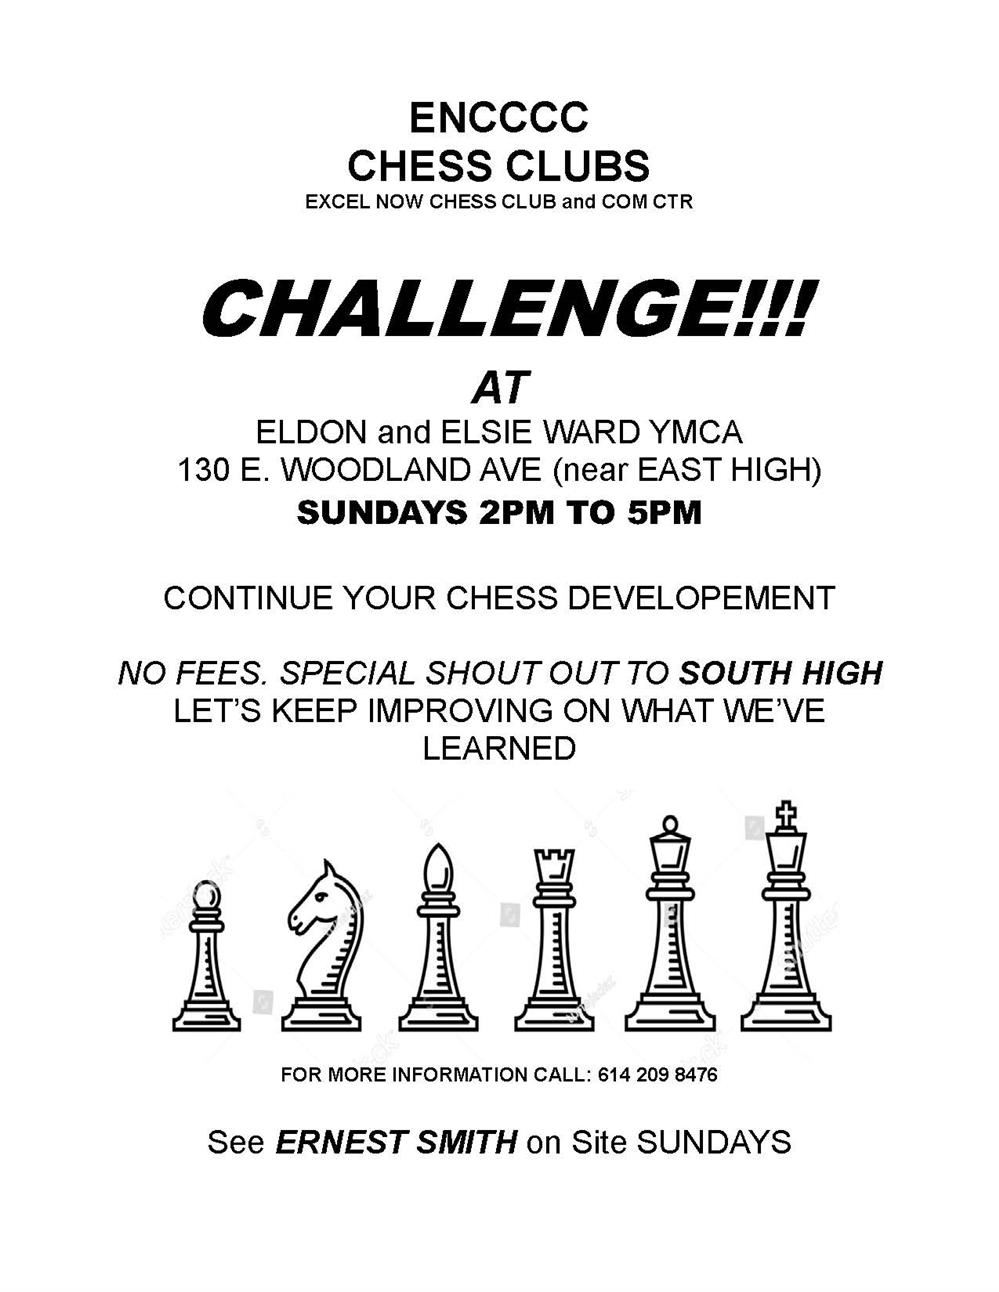 Excel NOW Chess Club